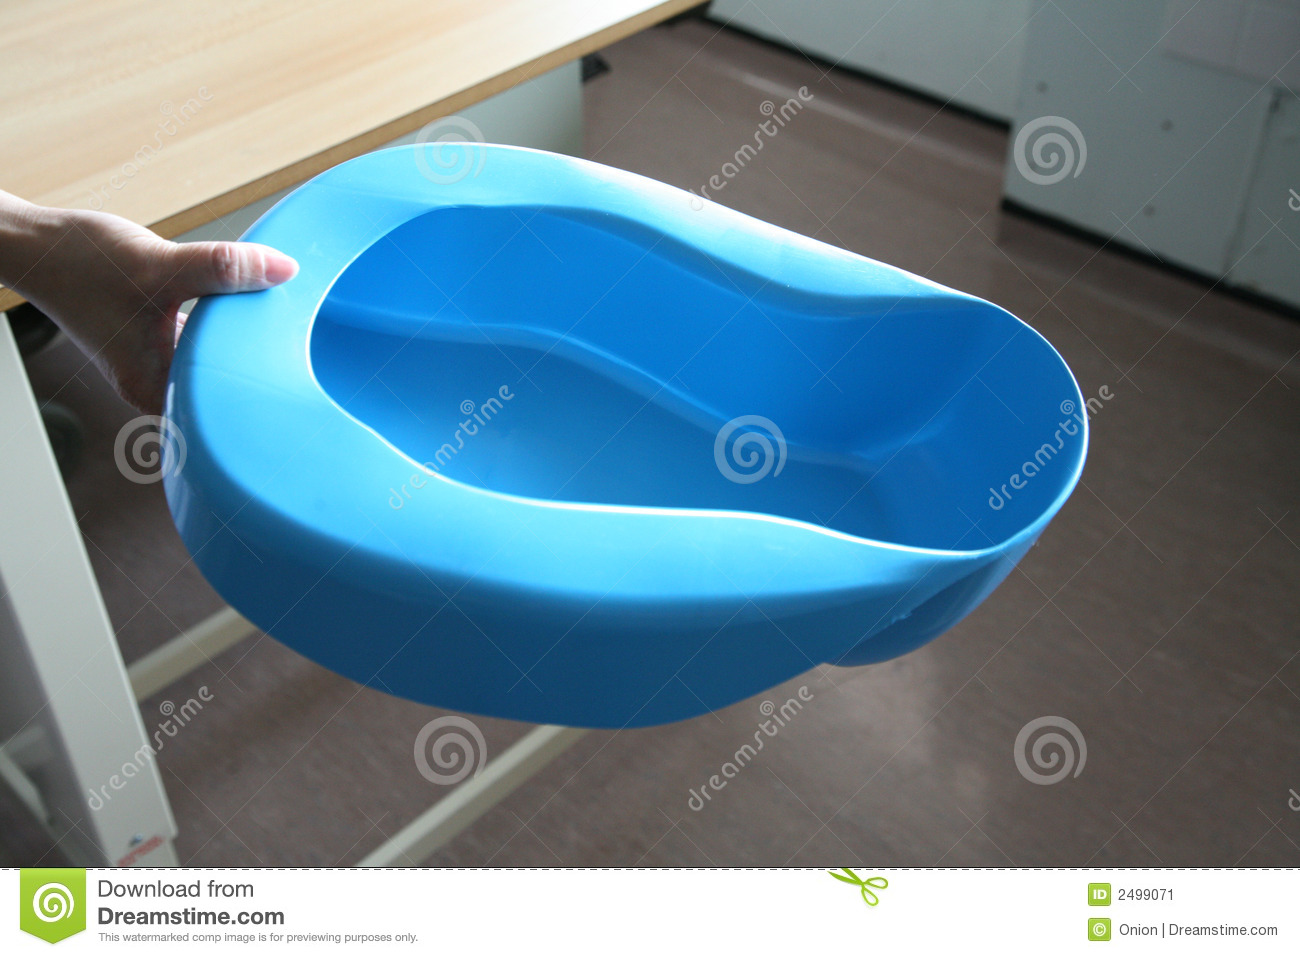 how to put a patient on a bedpan